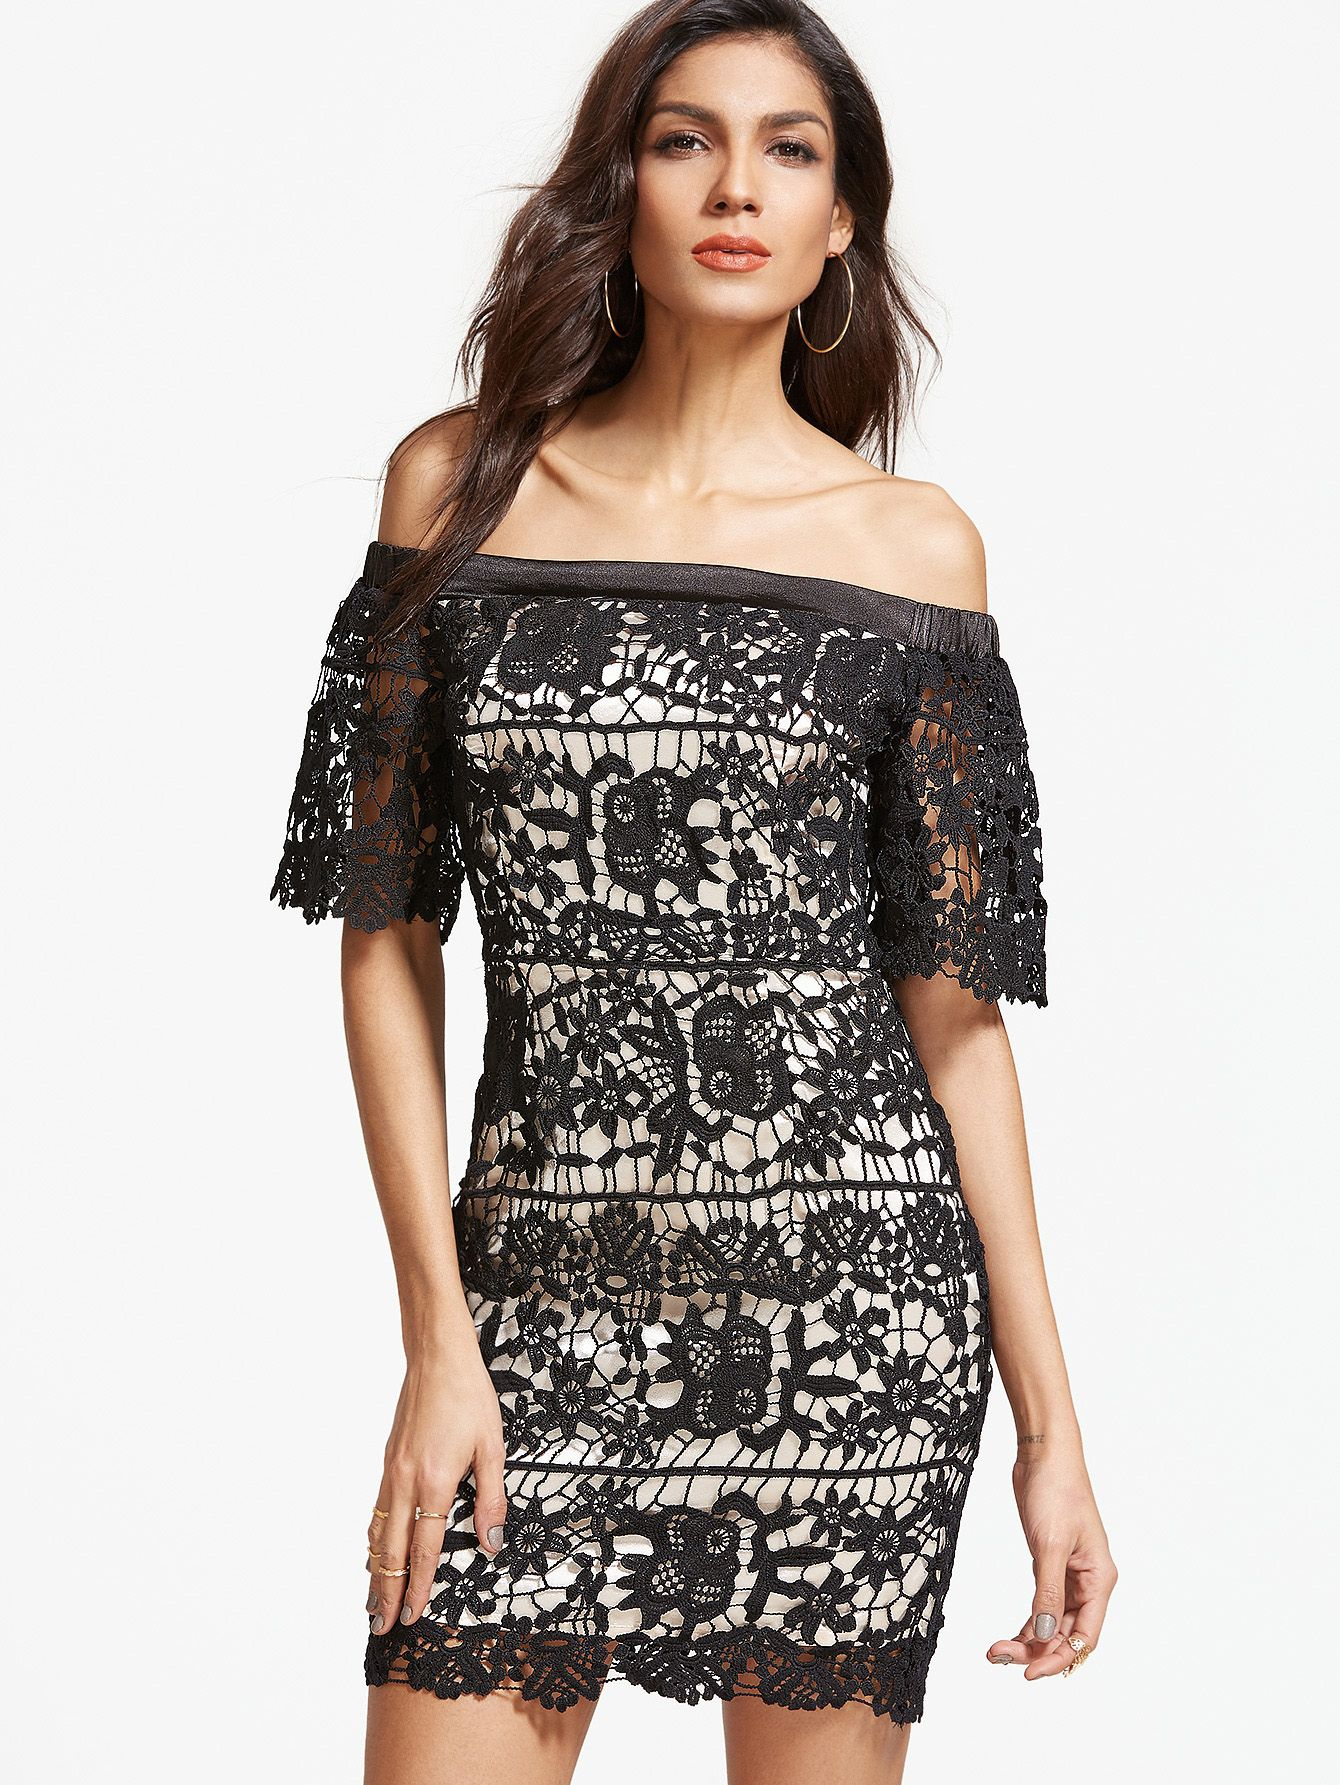 Lace dress gray  Shop Black Embroidered Lace Overlay Off The Shoulder Dress online